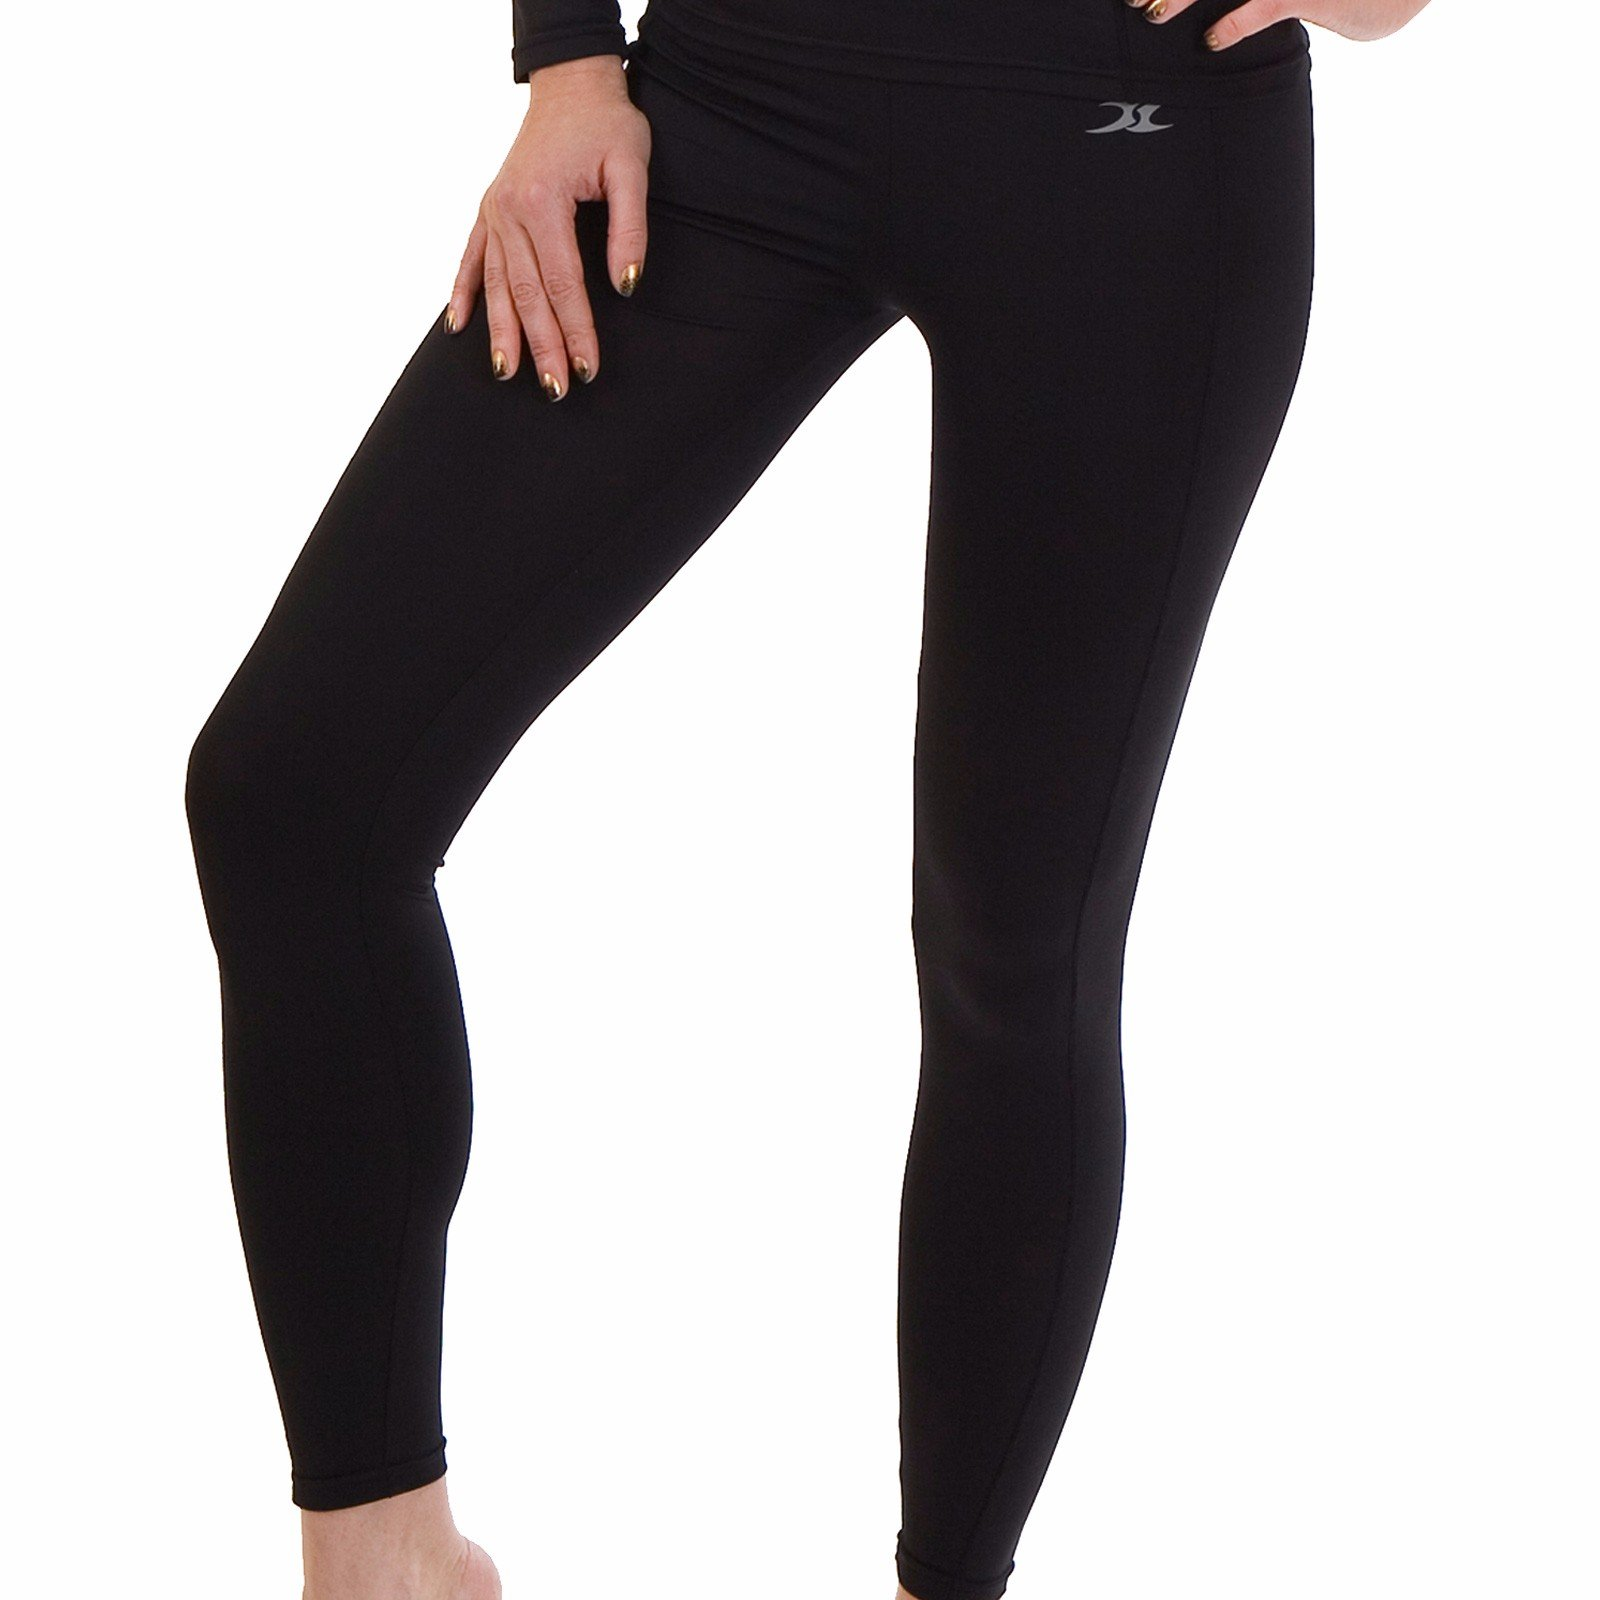 Women Thermal Underwear Pants Leggings Tights Base Layer Compression Bottoms NPW S by Henri maurice (Image #5)